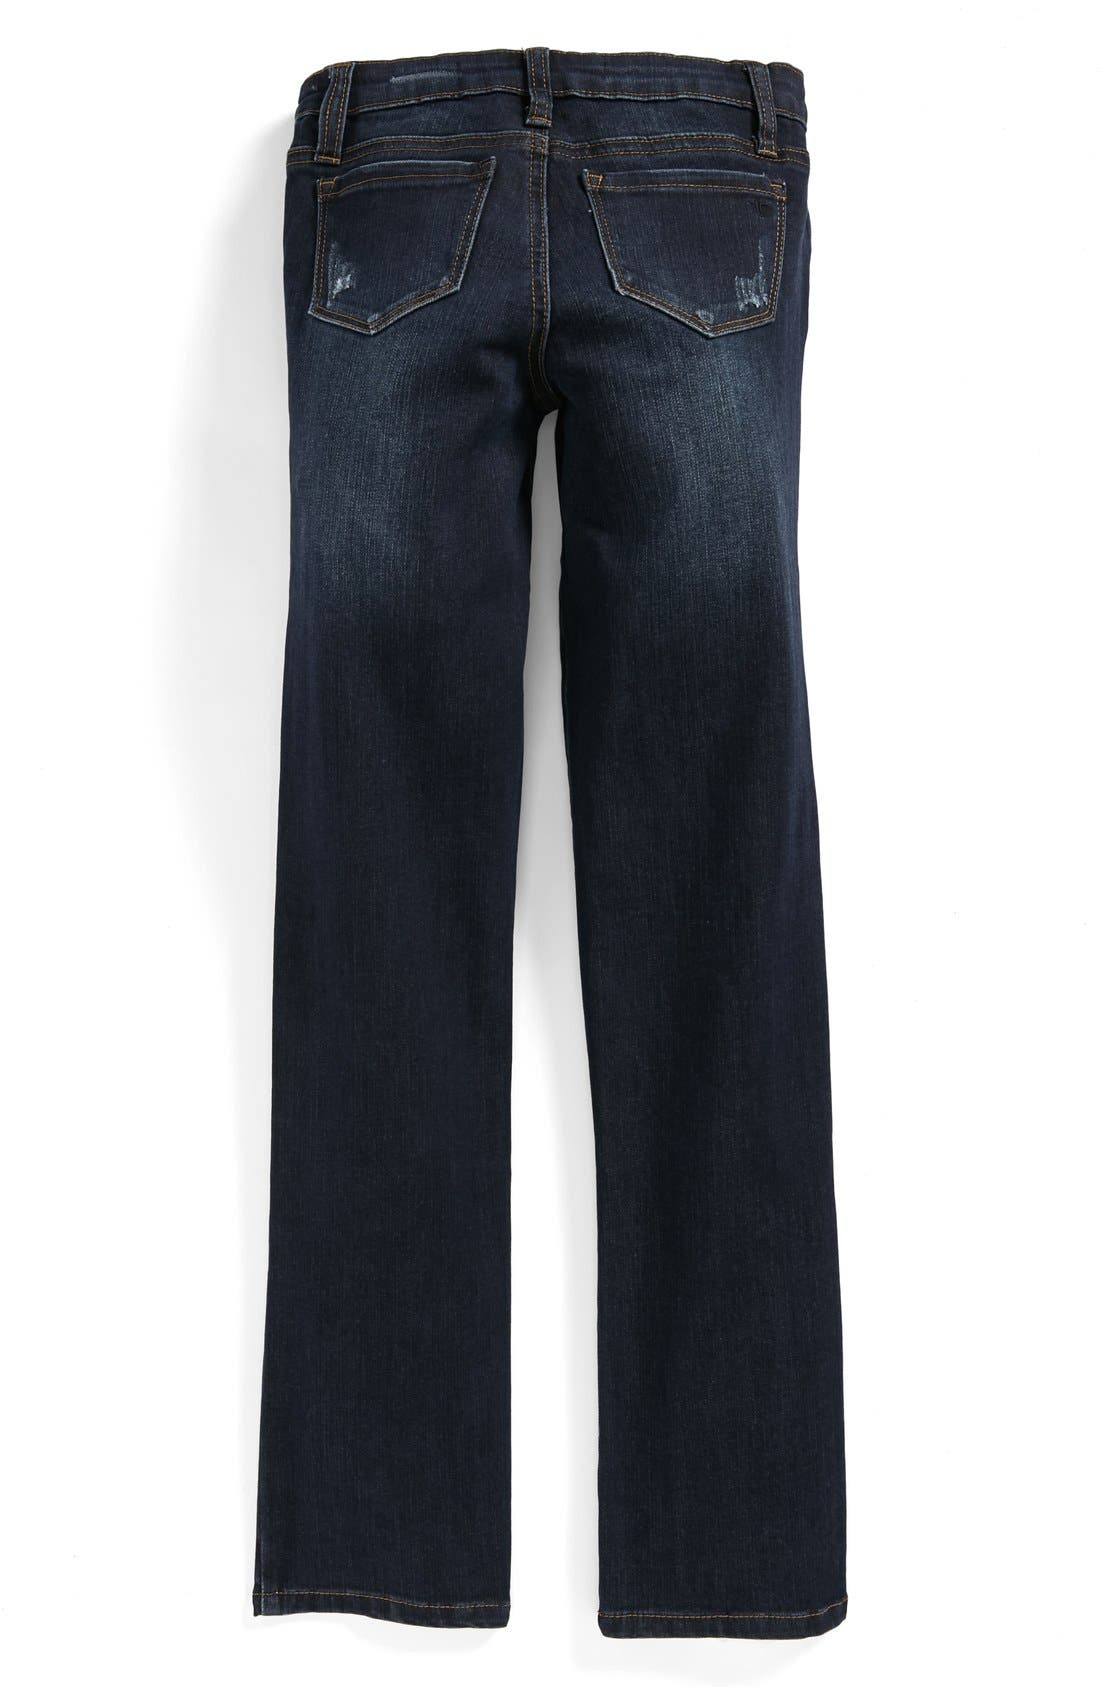 Alternate Image 1 Selected - Tractr Boyfriend Jeans (Big Girls)